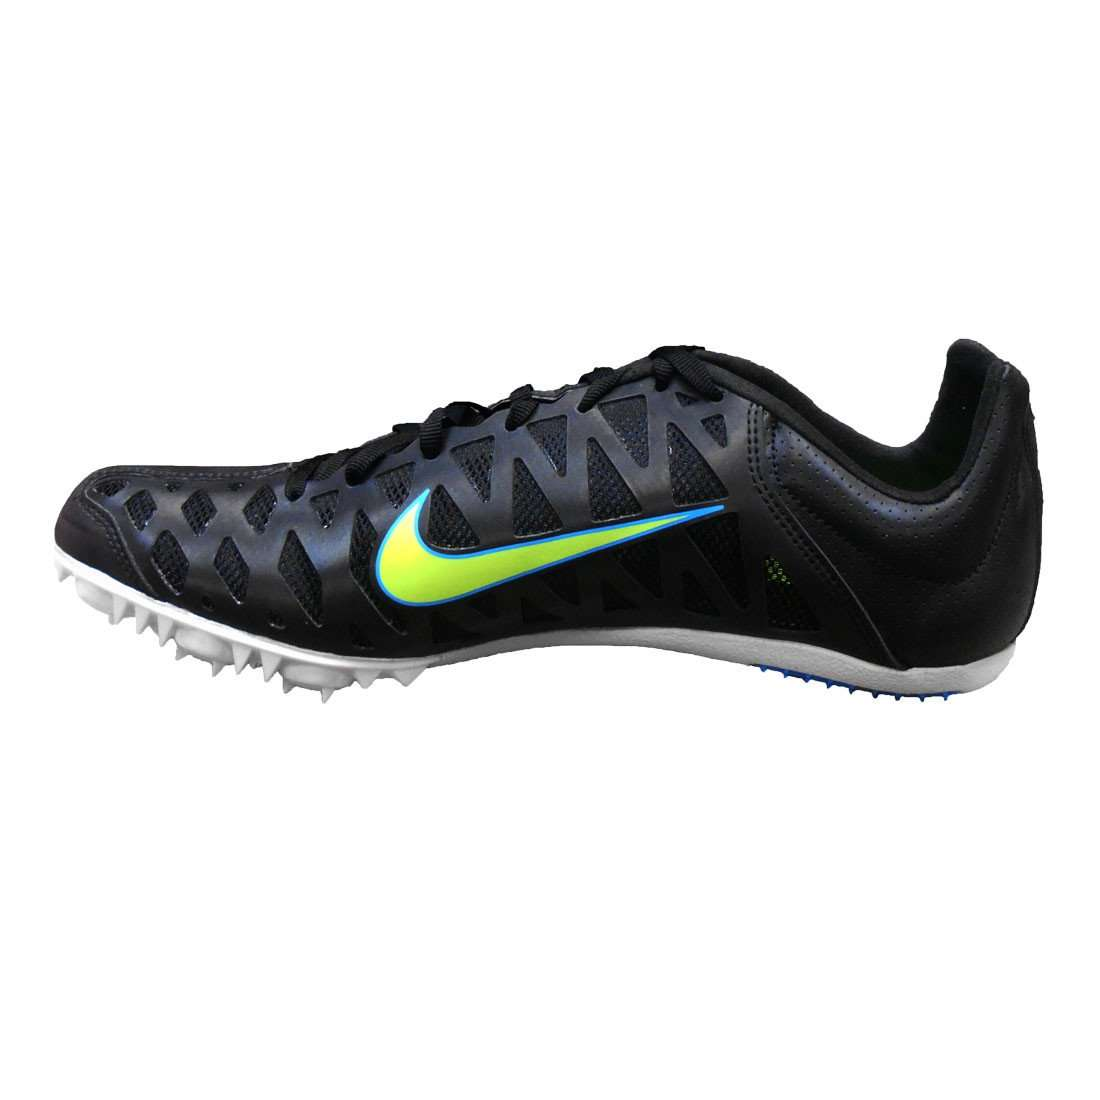 44bbbeb8ab1d ... Nike Zoom Maxcat 3 Unisex Sprint Spikes - League Outfitters ...